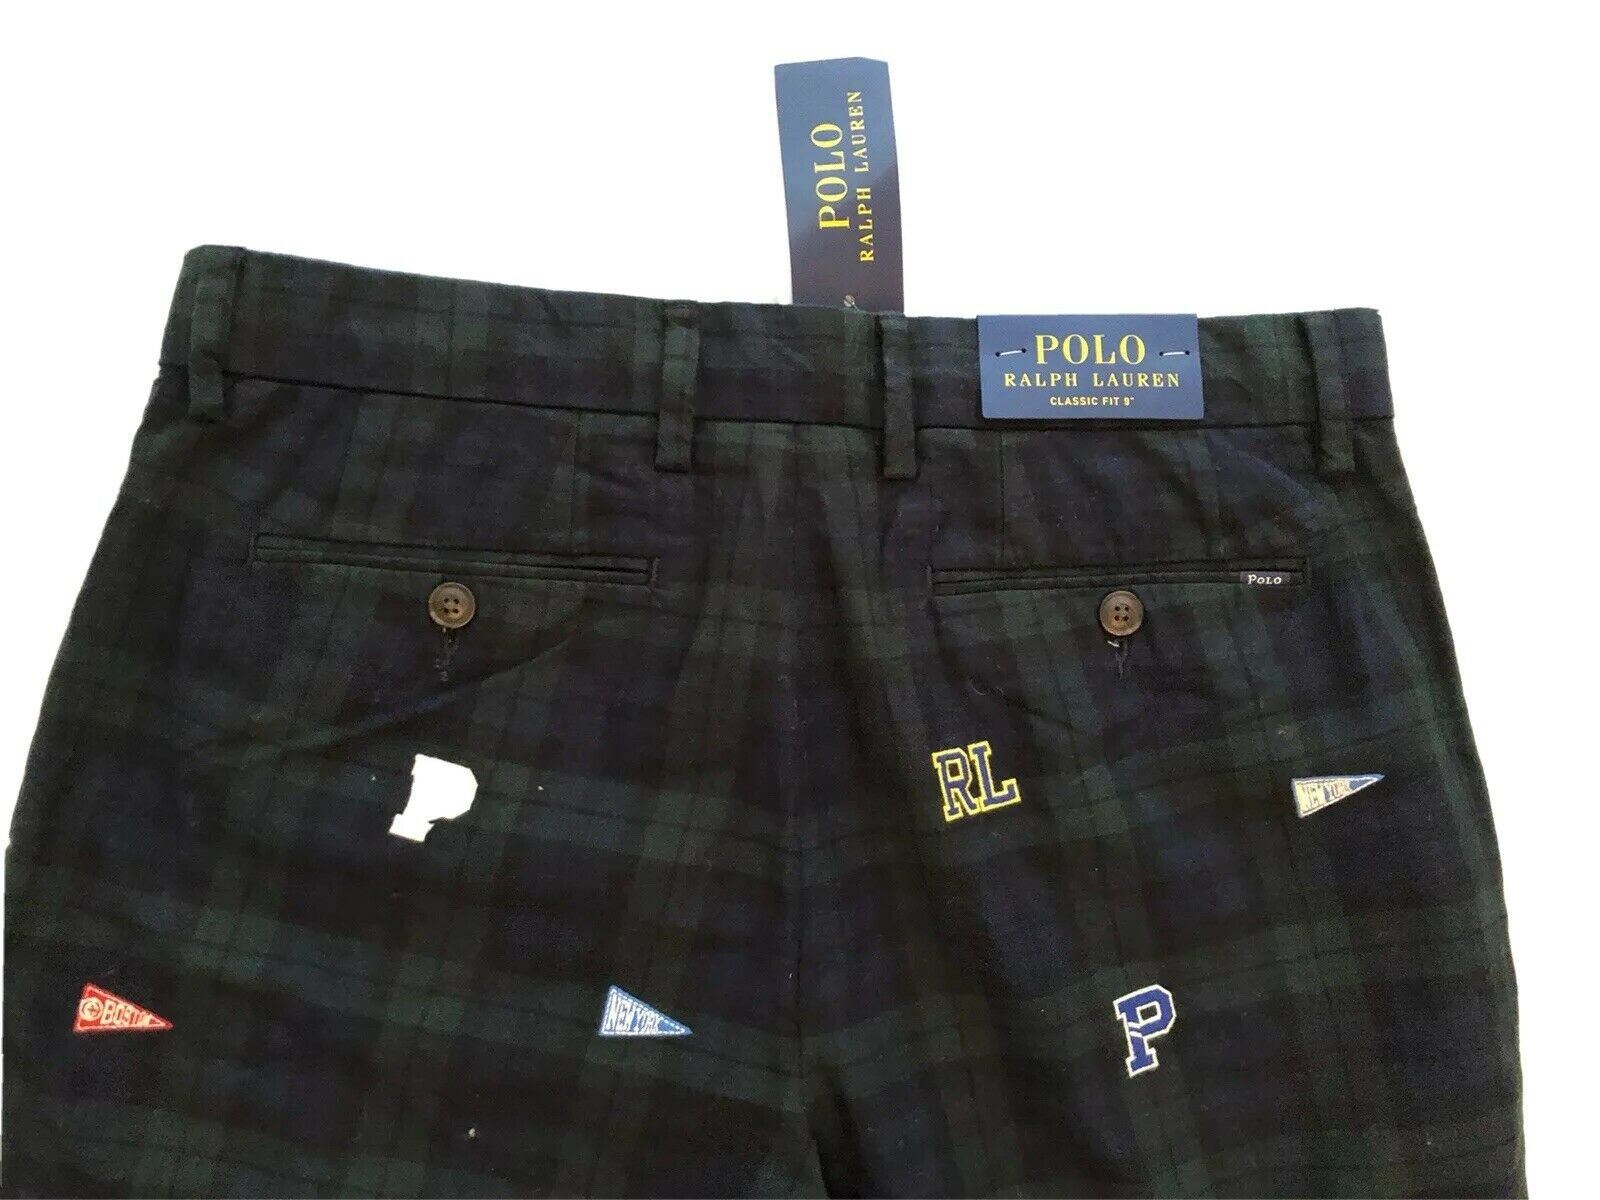 NWT $69 POLO Ralph Lauren Men's Green/Blue Classic Fit Shorts Size 30